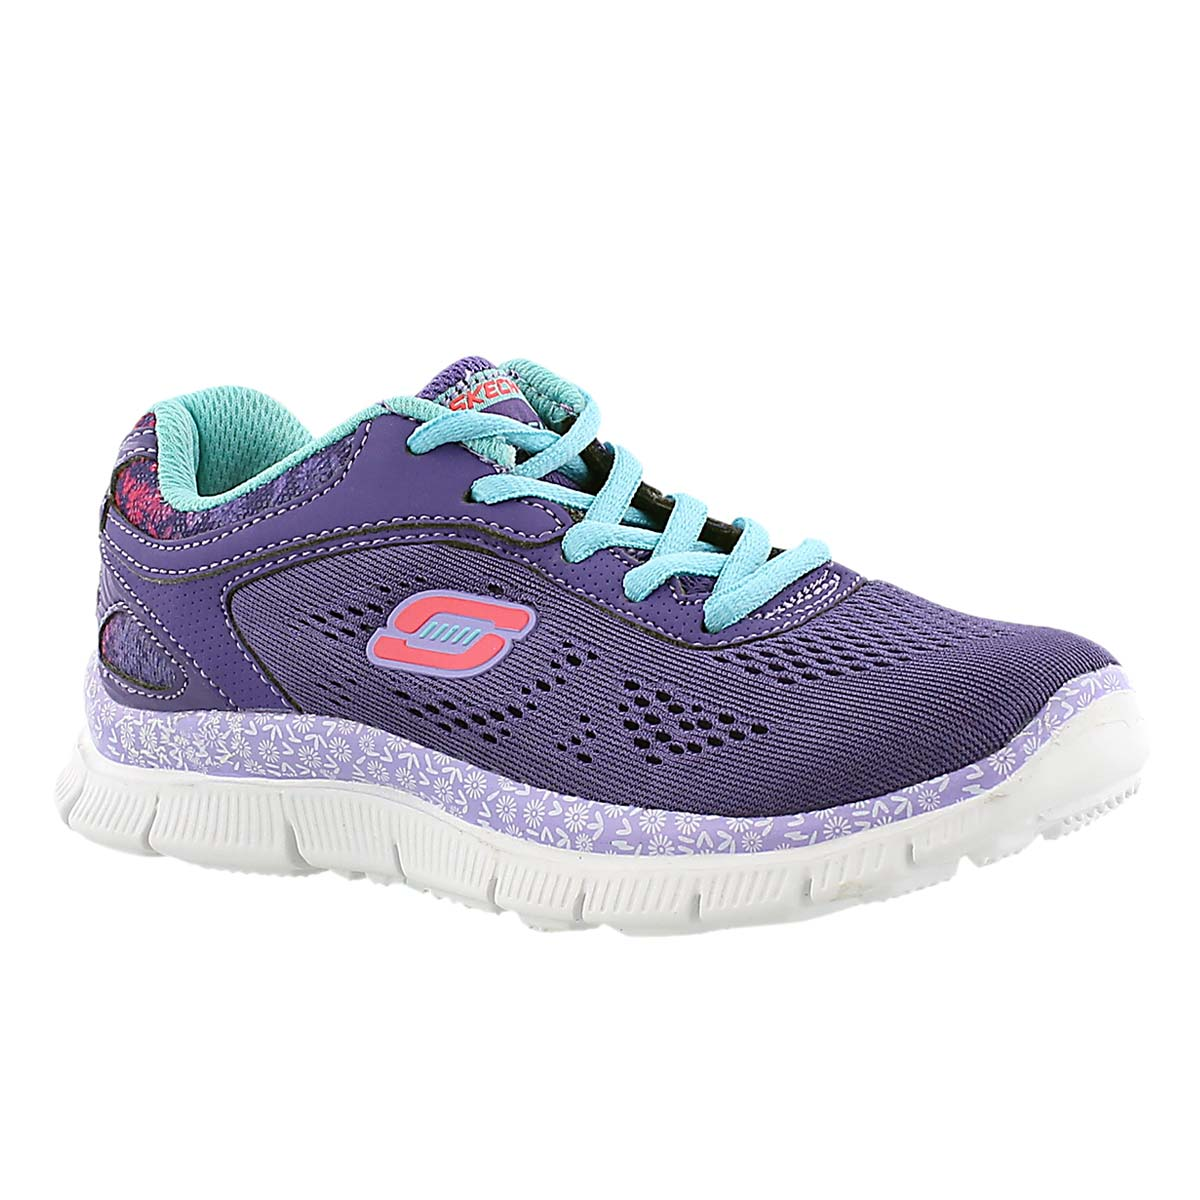 Girls' ISLAND STYLE purple lace up sneakers